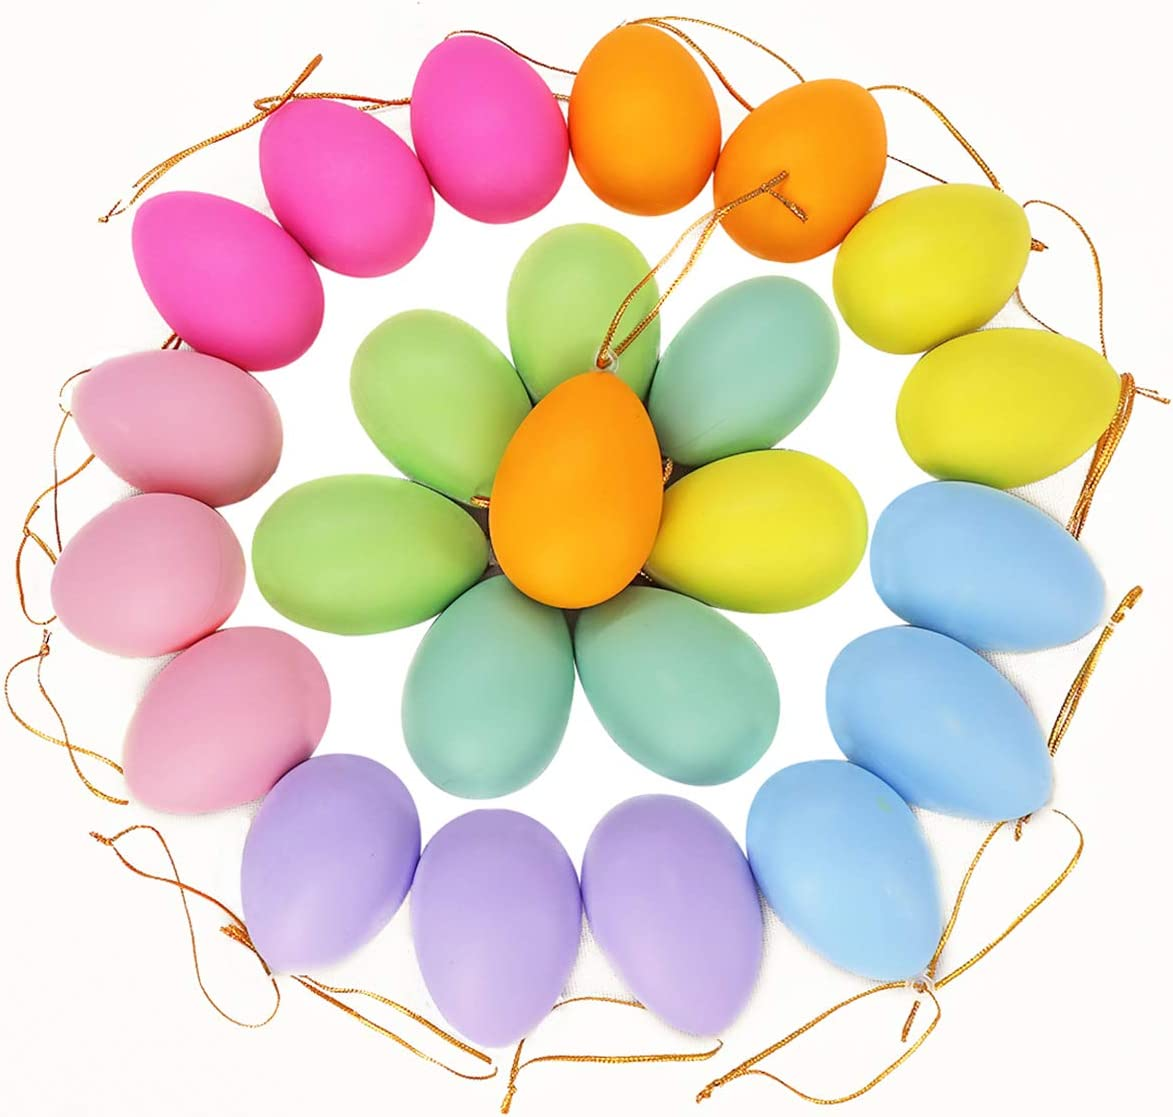 Ivenf Easter Decorations Egg Hanging Ornaments 24 pcs, Colorful Plastic Eggs Easter Tree Ornaments Decor, Kids School Home Office Party Supplies Gifts